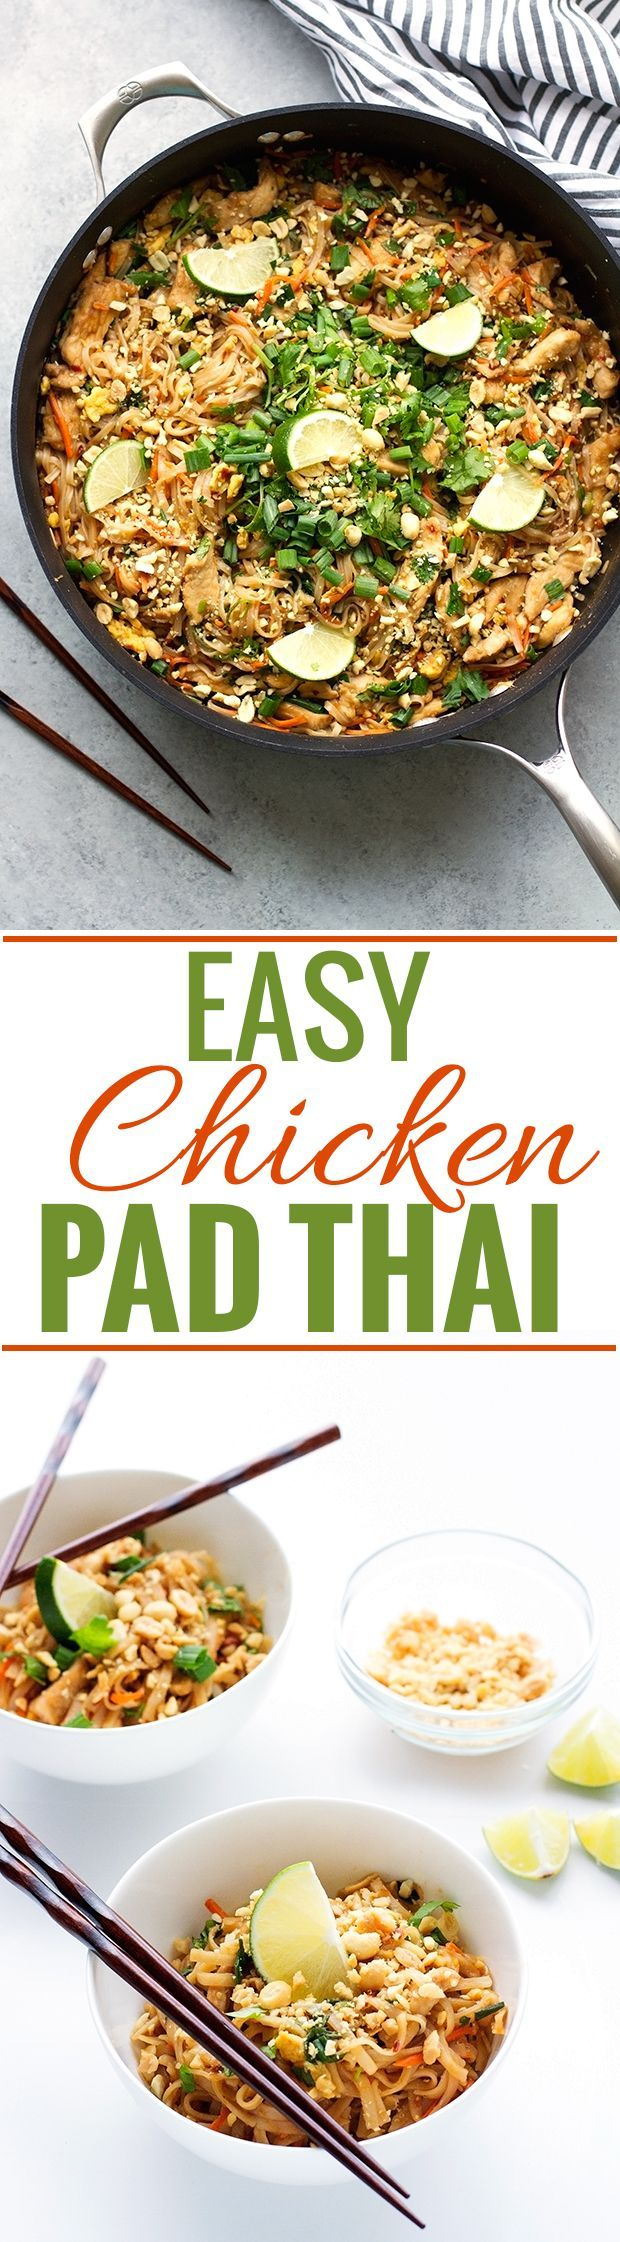 shop running room Easy Chicken Pad Thai Recipe   this takes 30 minutes to make and is soooooo GOOD   padthai  thaifood  takeoutfakeout   Littlespicejar com